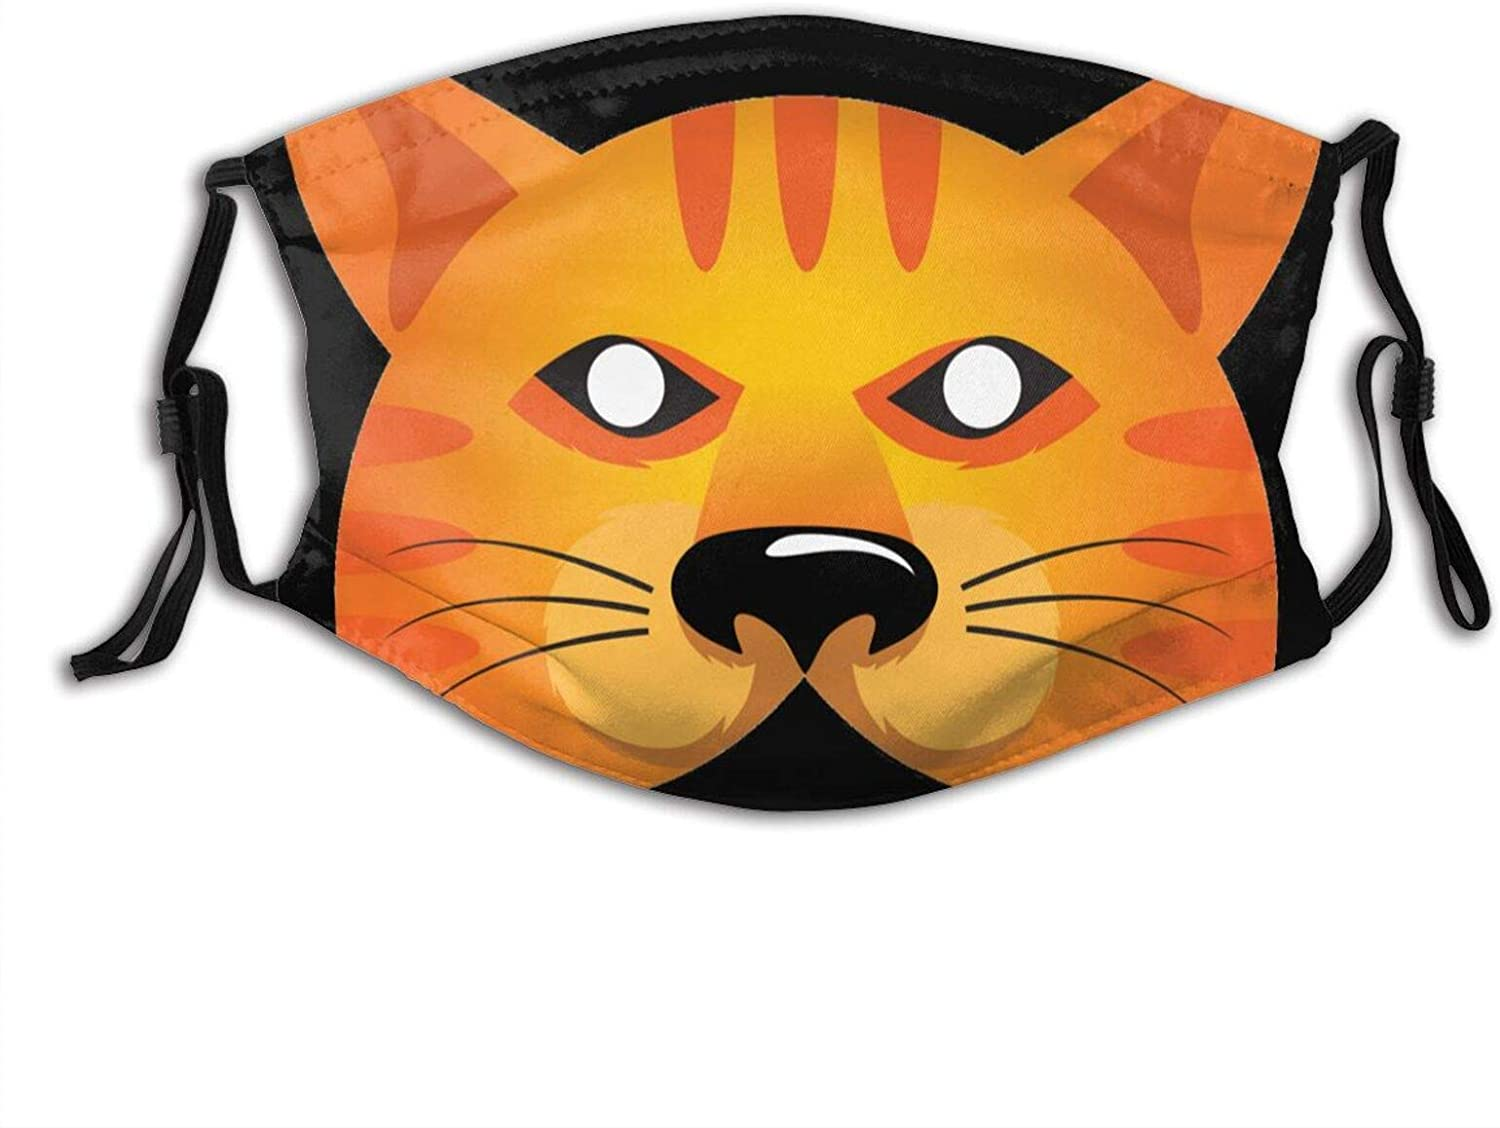 Cool Siberian Cat Face Mask Washable & Reusable - Adjustable & Breathable Fliter Fashion Scarf